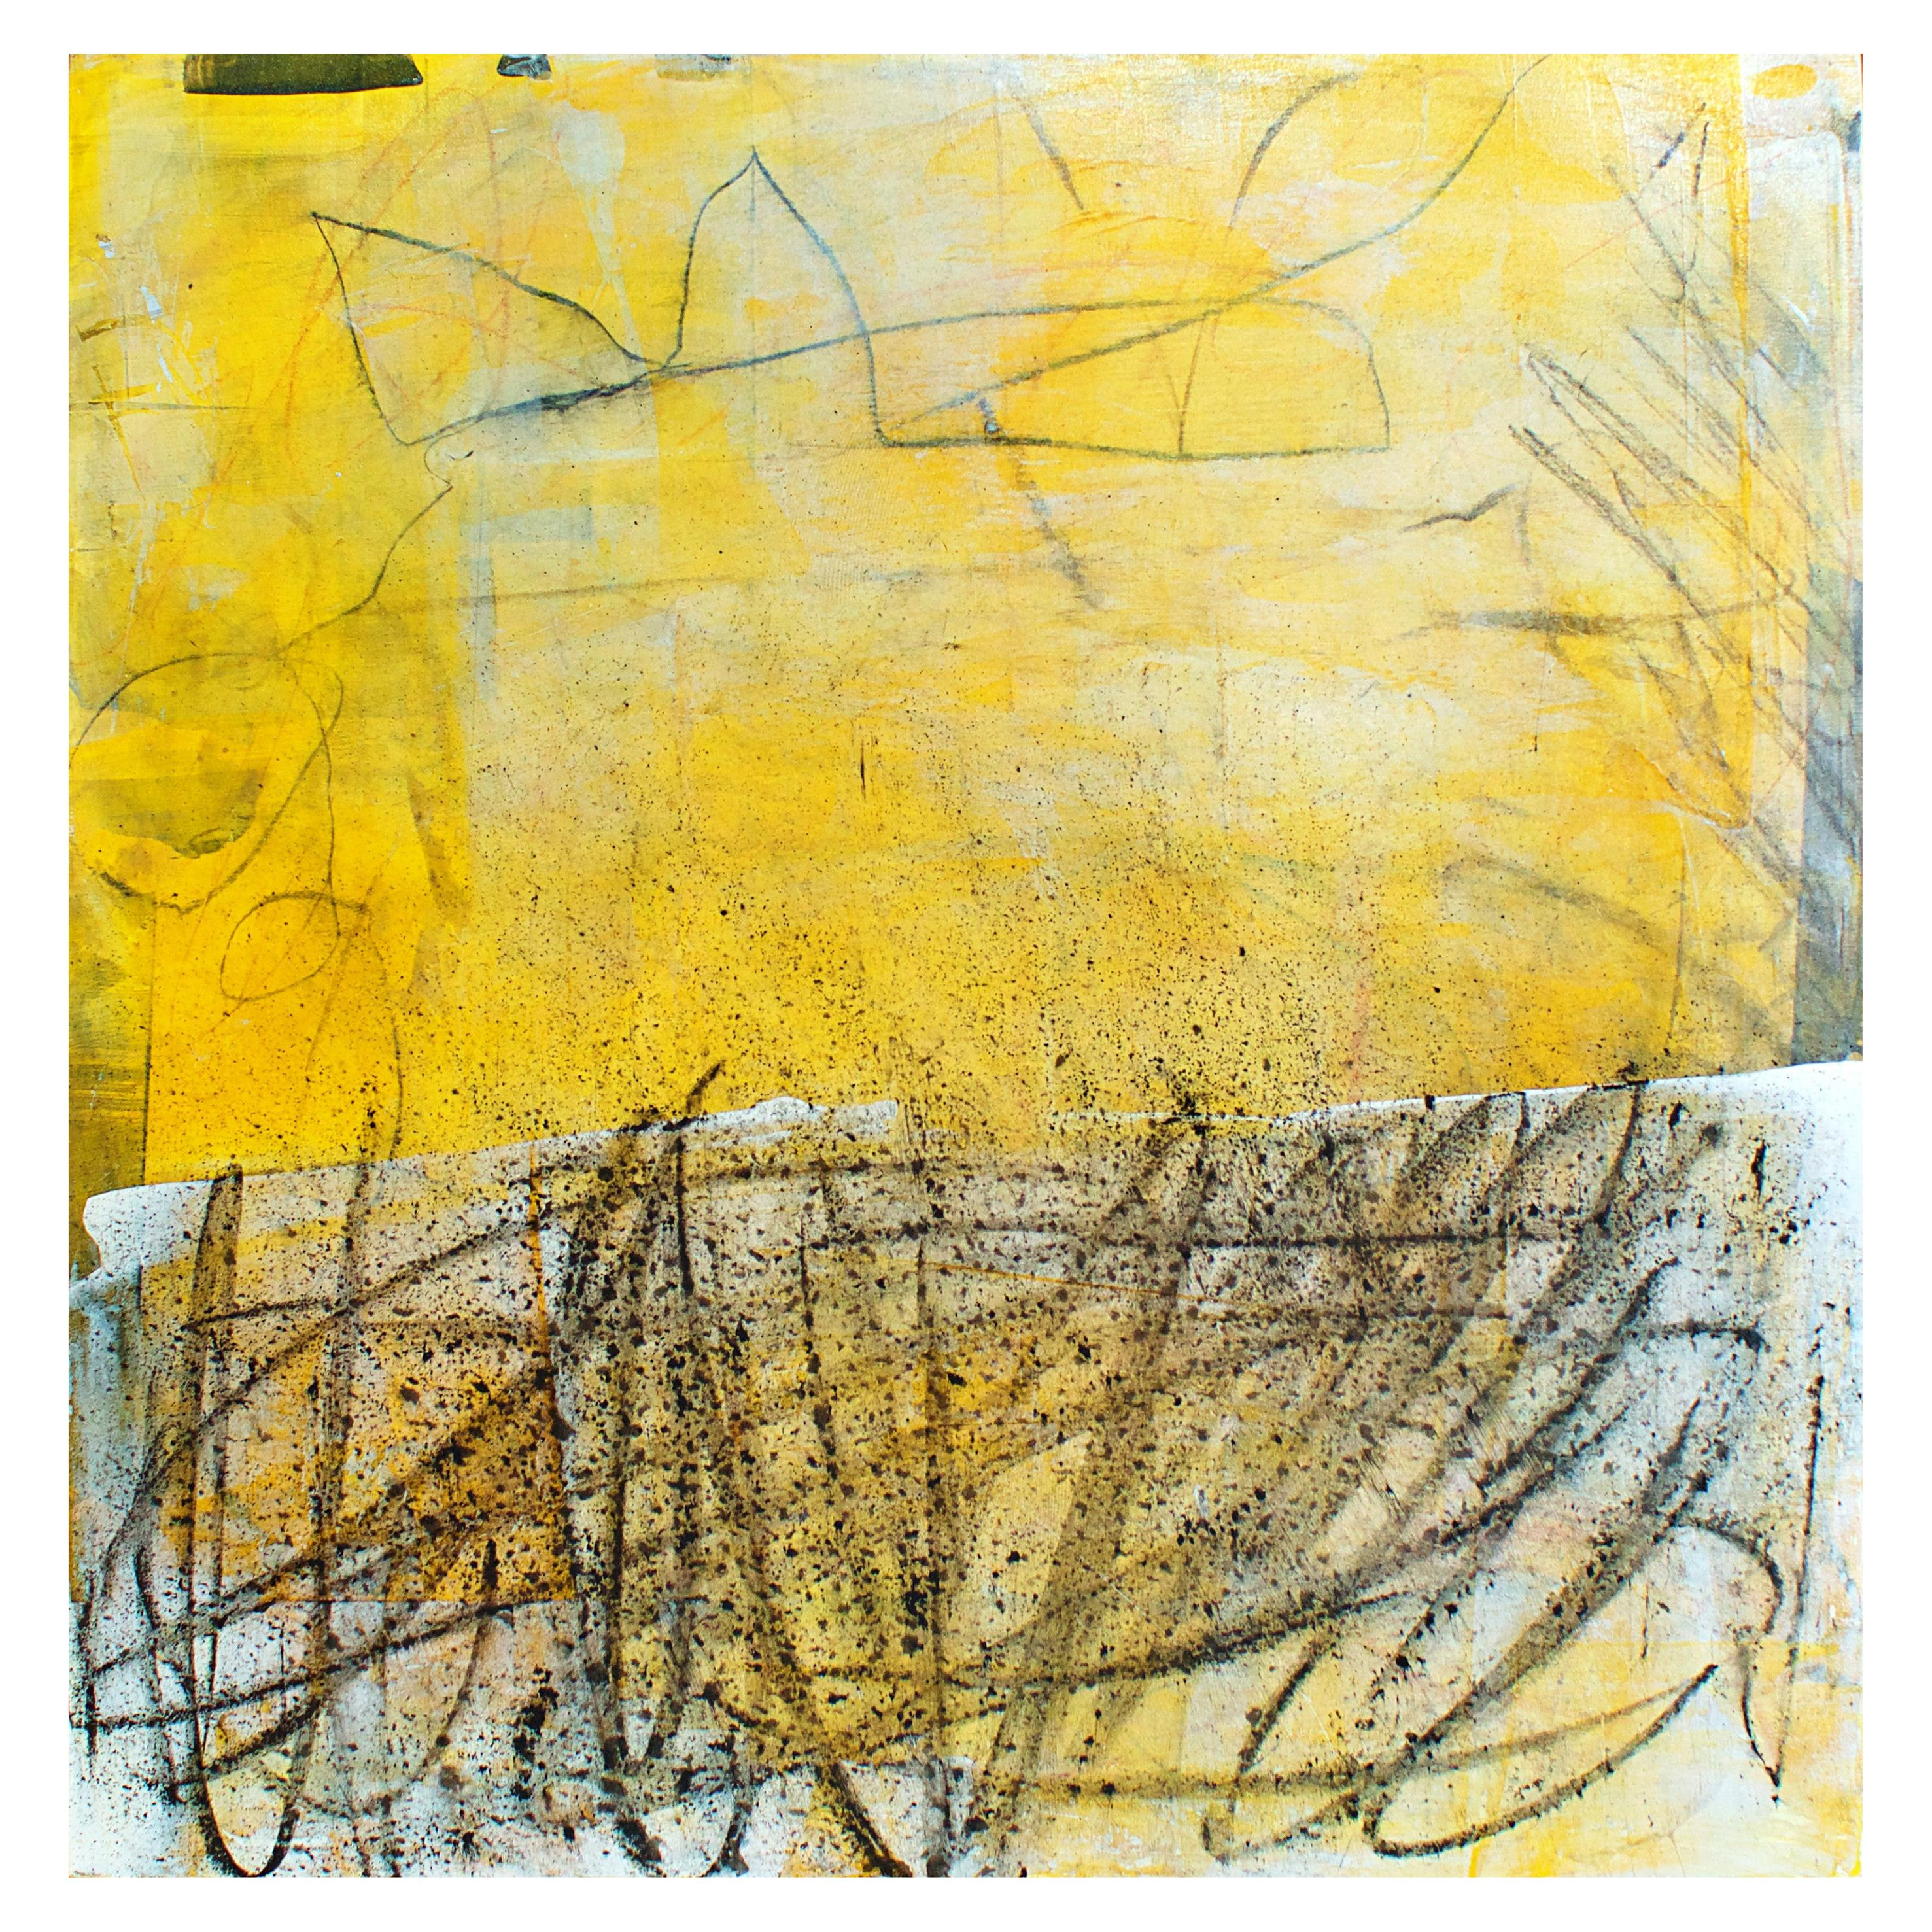 American Modern Abstract Expressionist Mixed-Media on Board, Elliot Twelvetrees